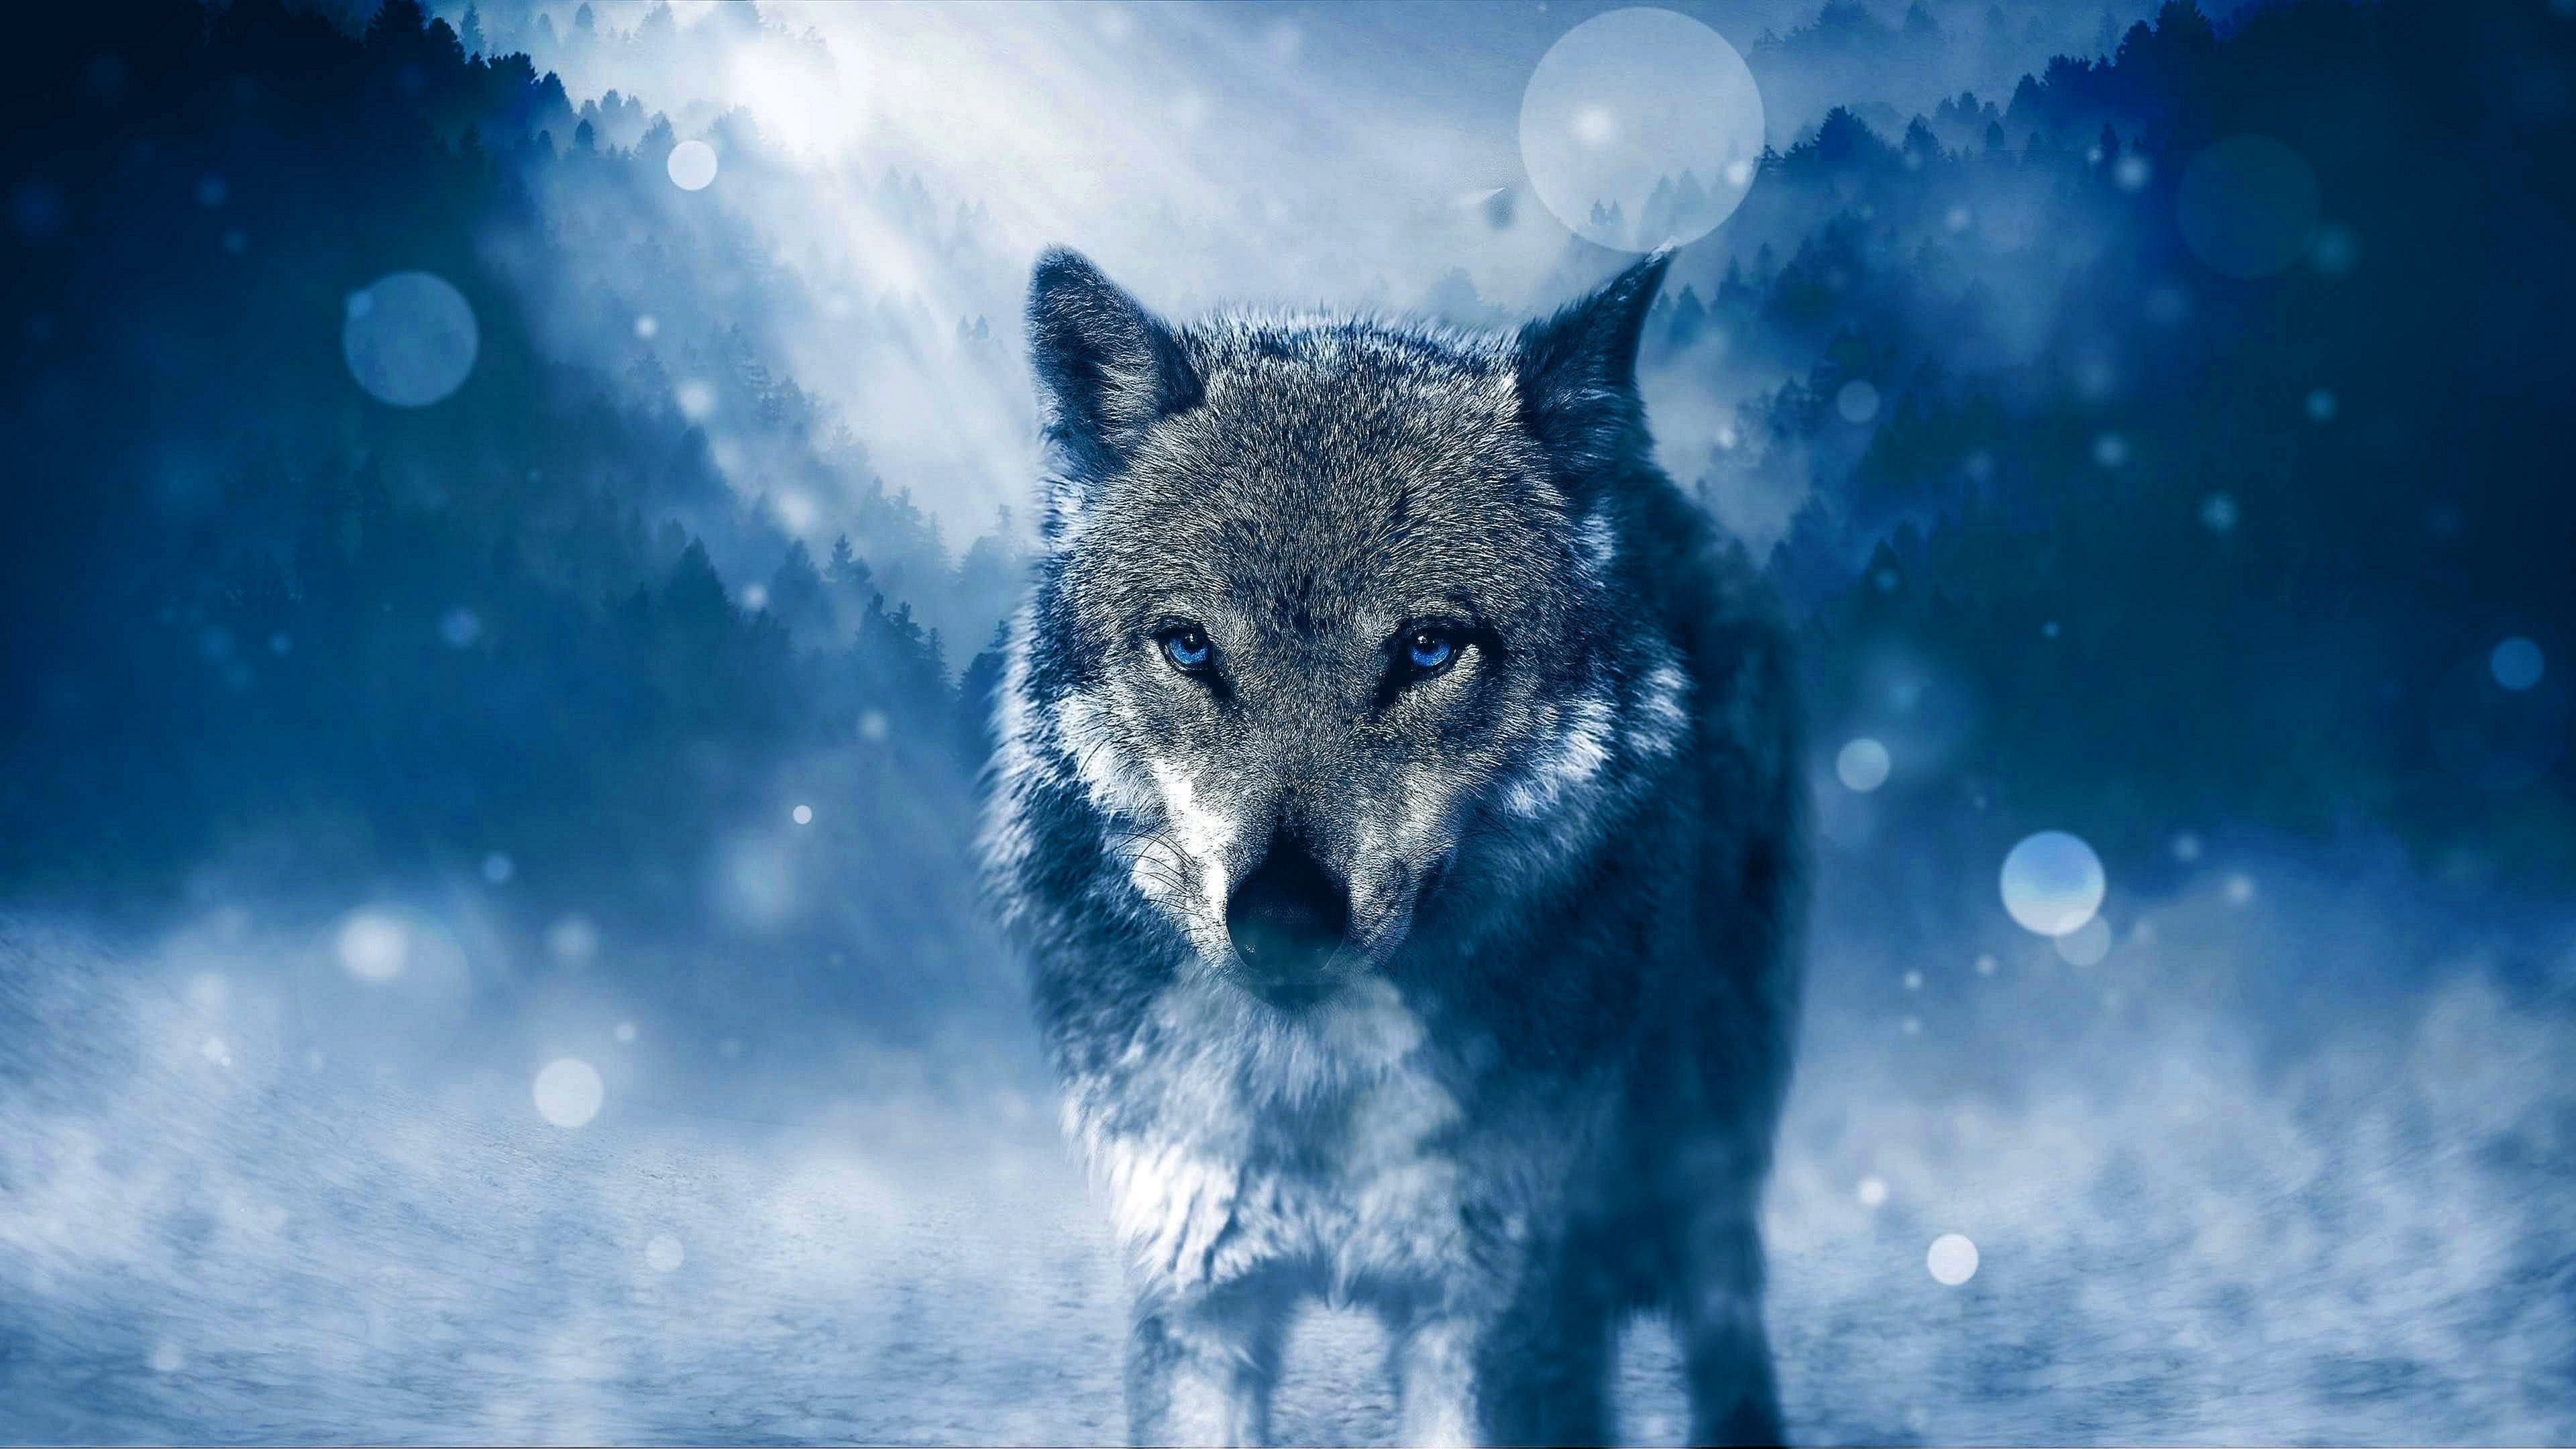 Wolf Wallpapers 4K For Laptop